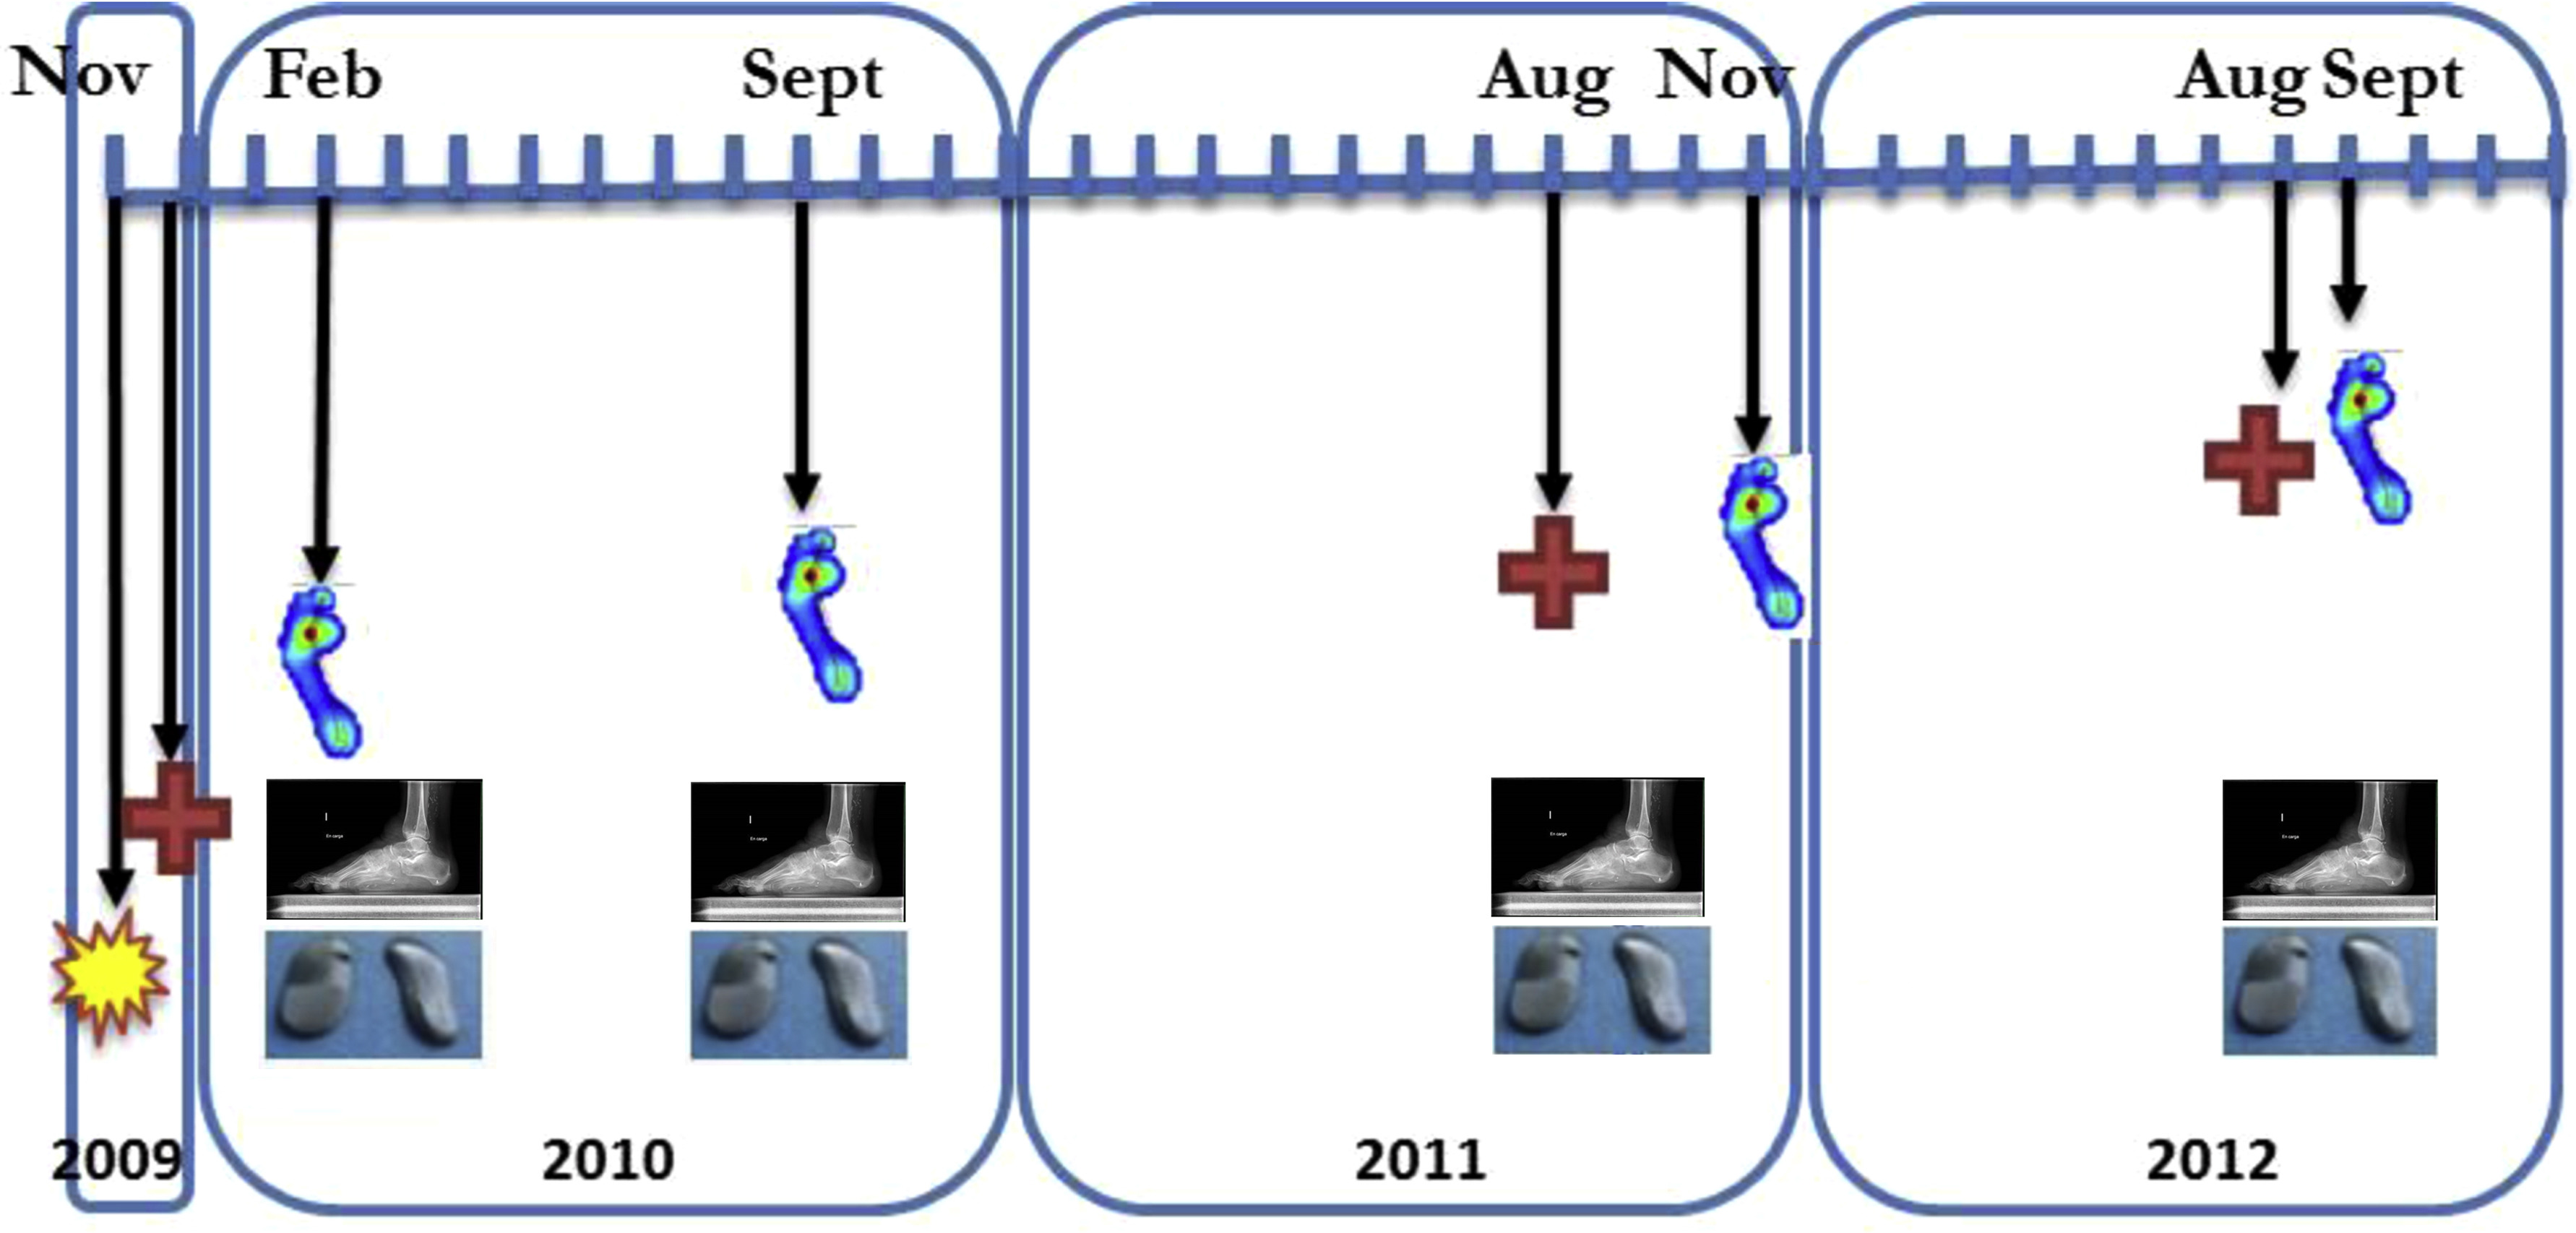 An Evaluation of Surgical Functional Reconstruction of the Foot Using Kinetic and Kinematic Systems: A Case Report - The Journal of Foot and Ankle ...